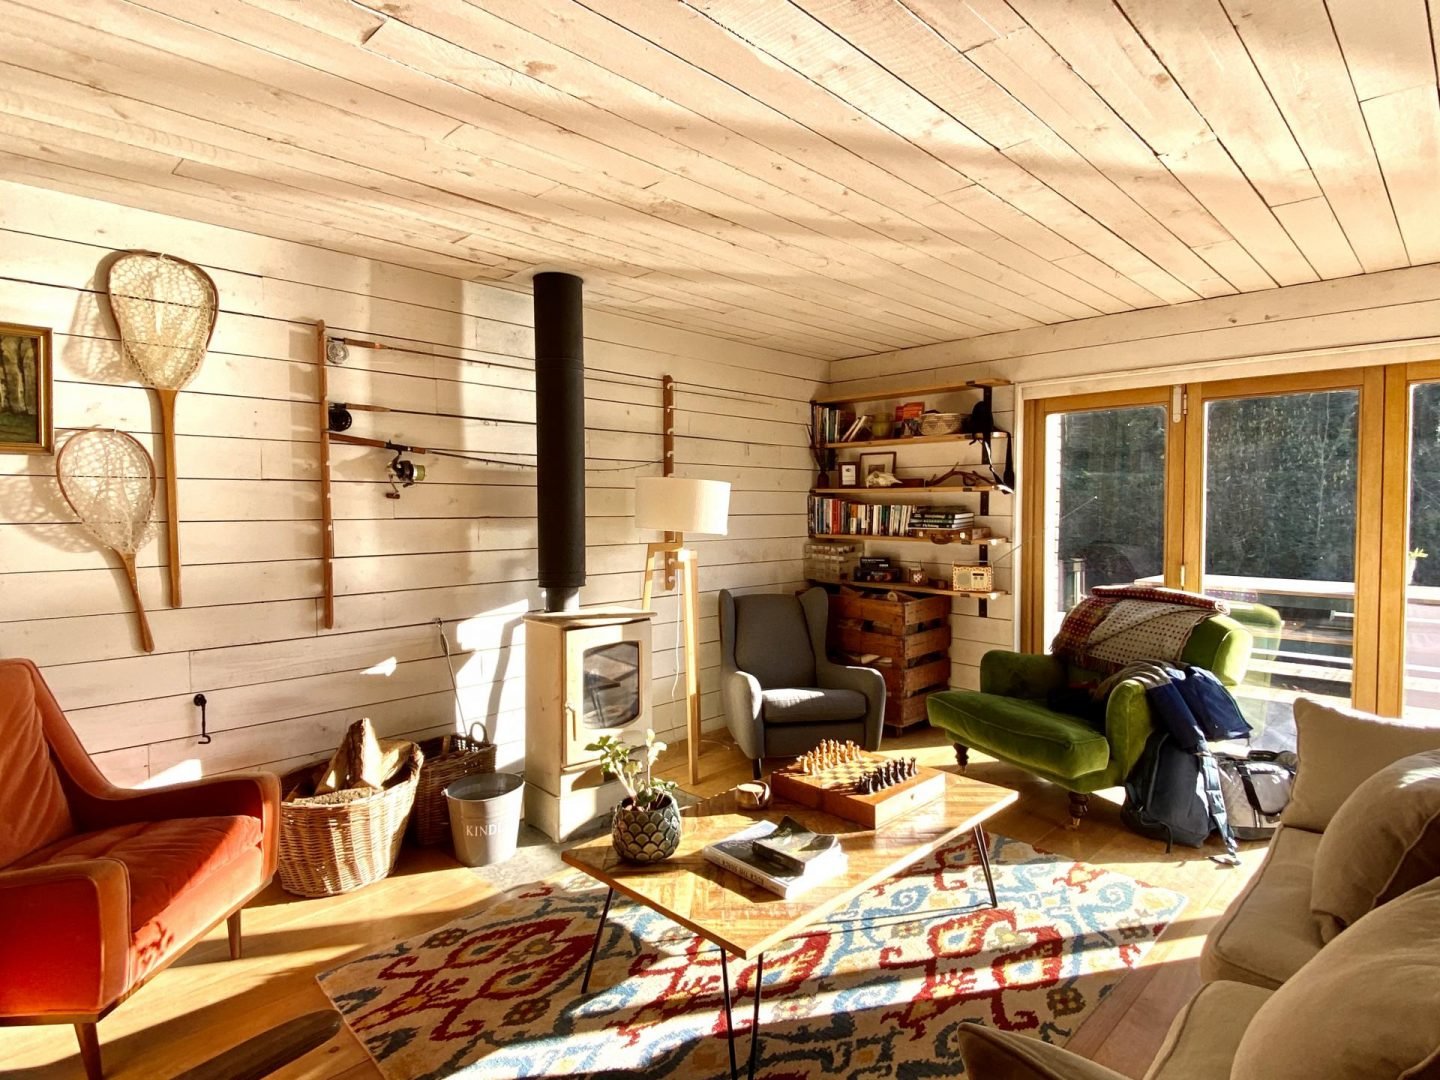 Ditchling Cabin Review | Canopy & Stars Cabin On A Lake